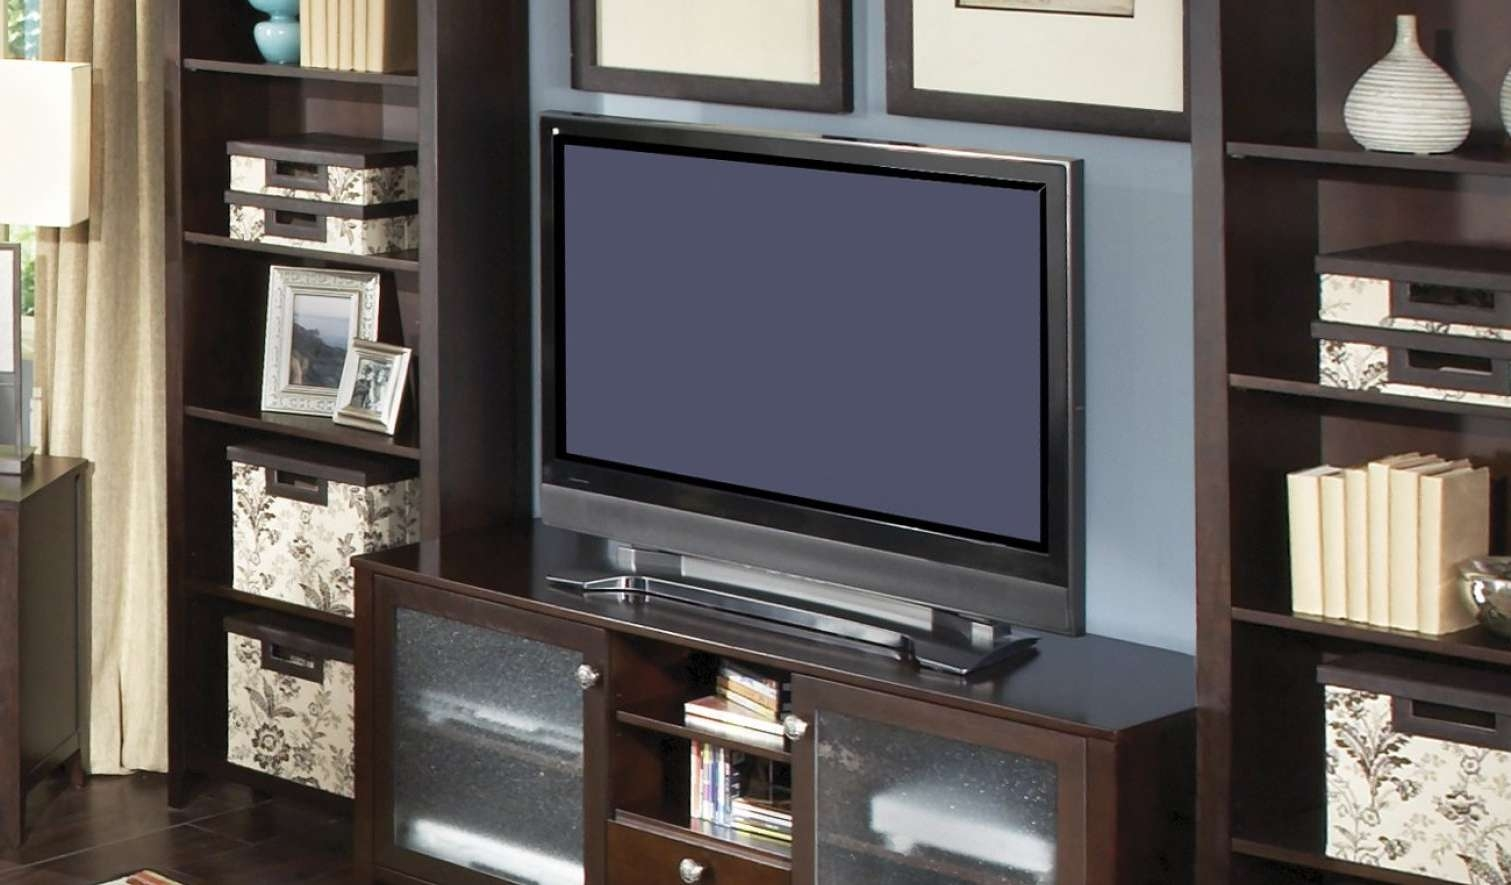 Tv : Upright Tv Stands Riveting Tall Upright Tv Stands' Gripping Throughout Upright Tv Stands (View 13 of 15)